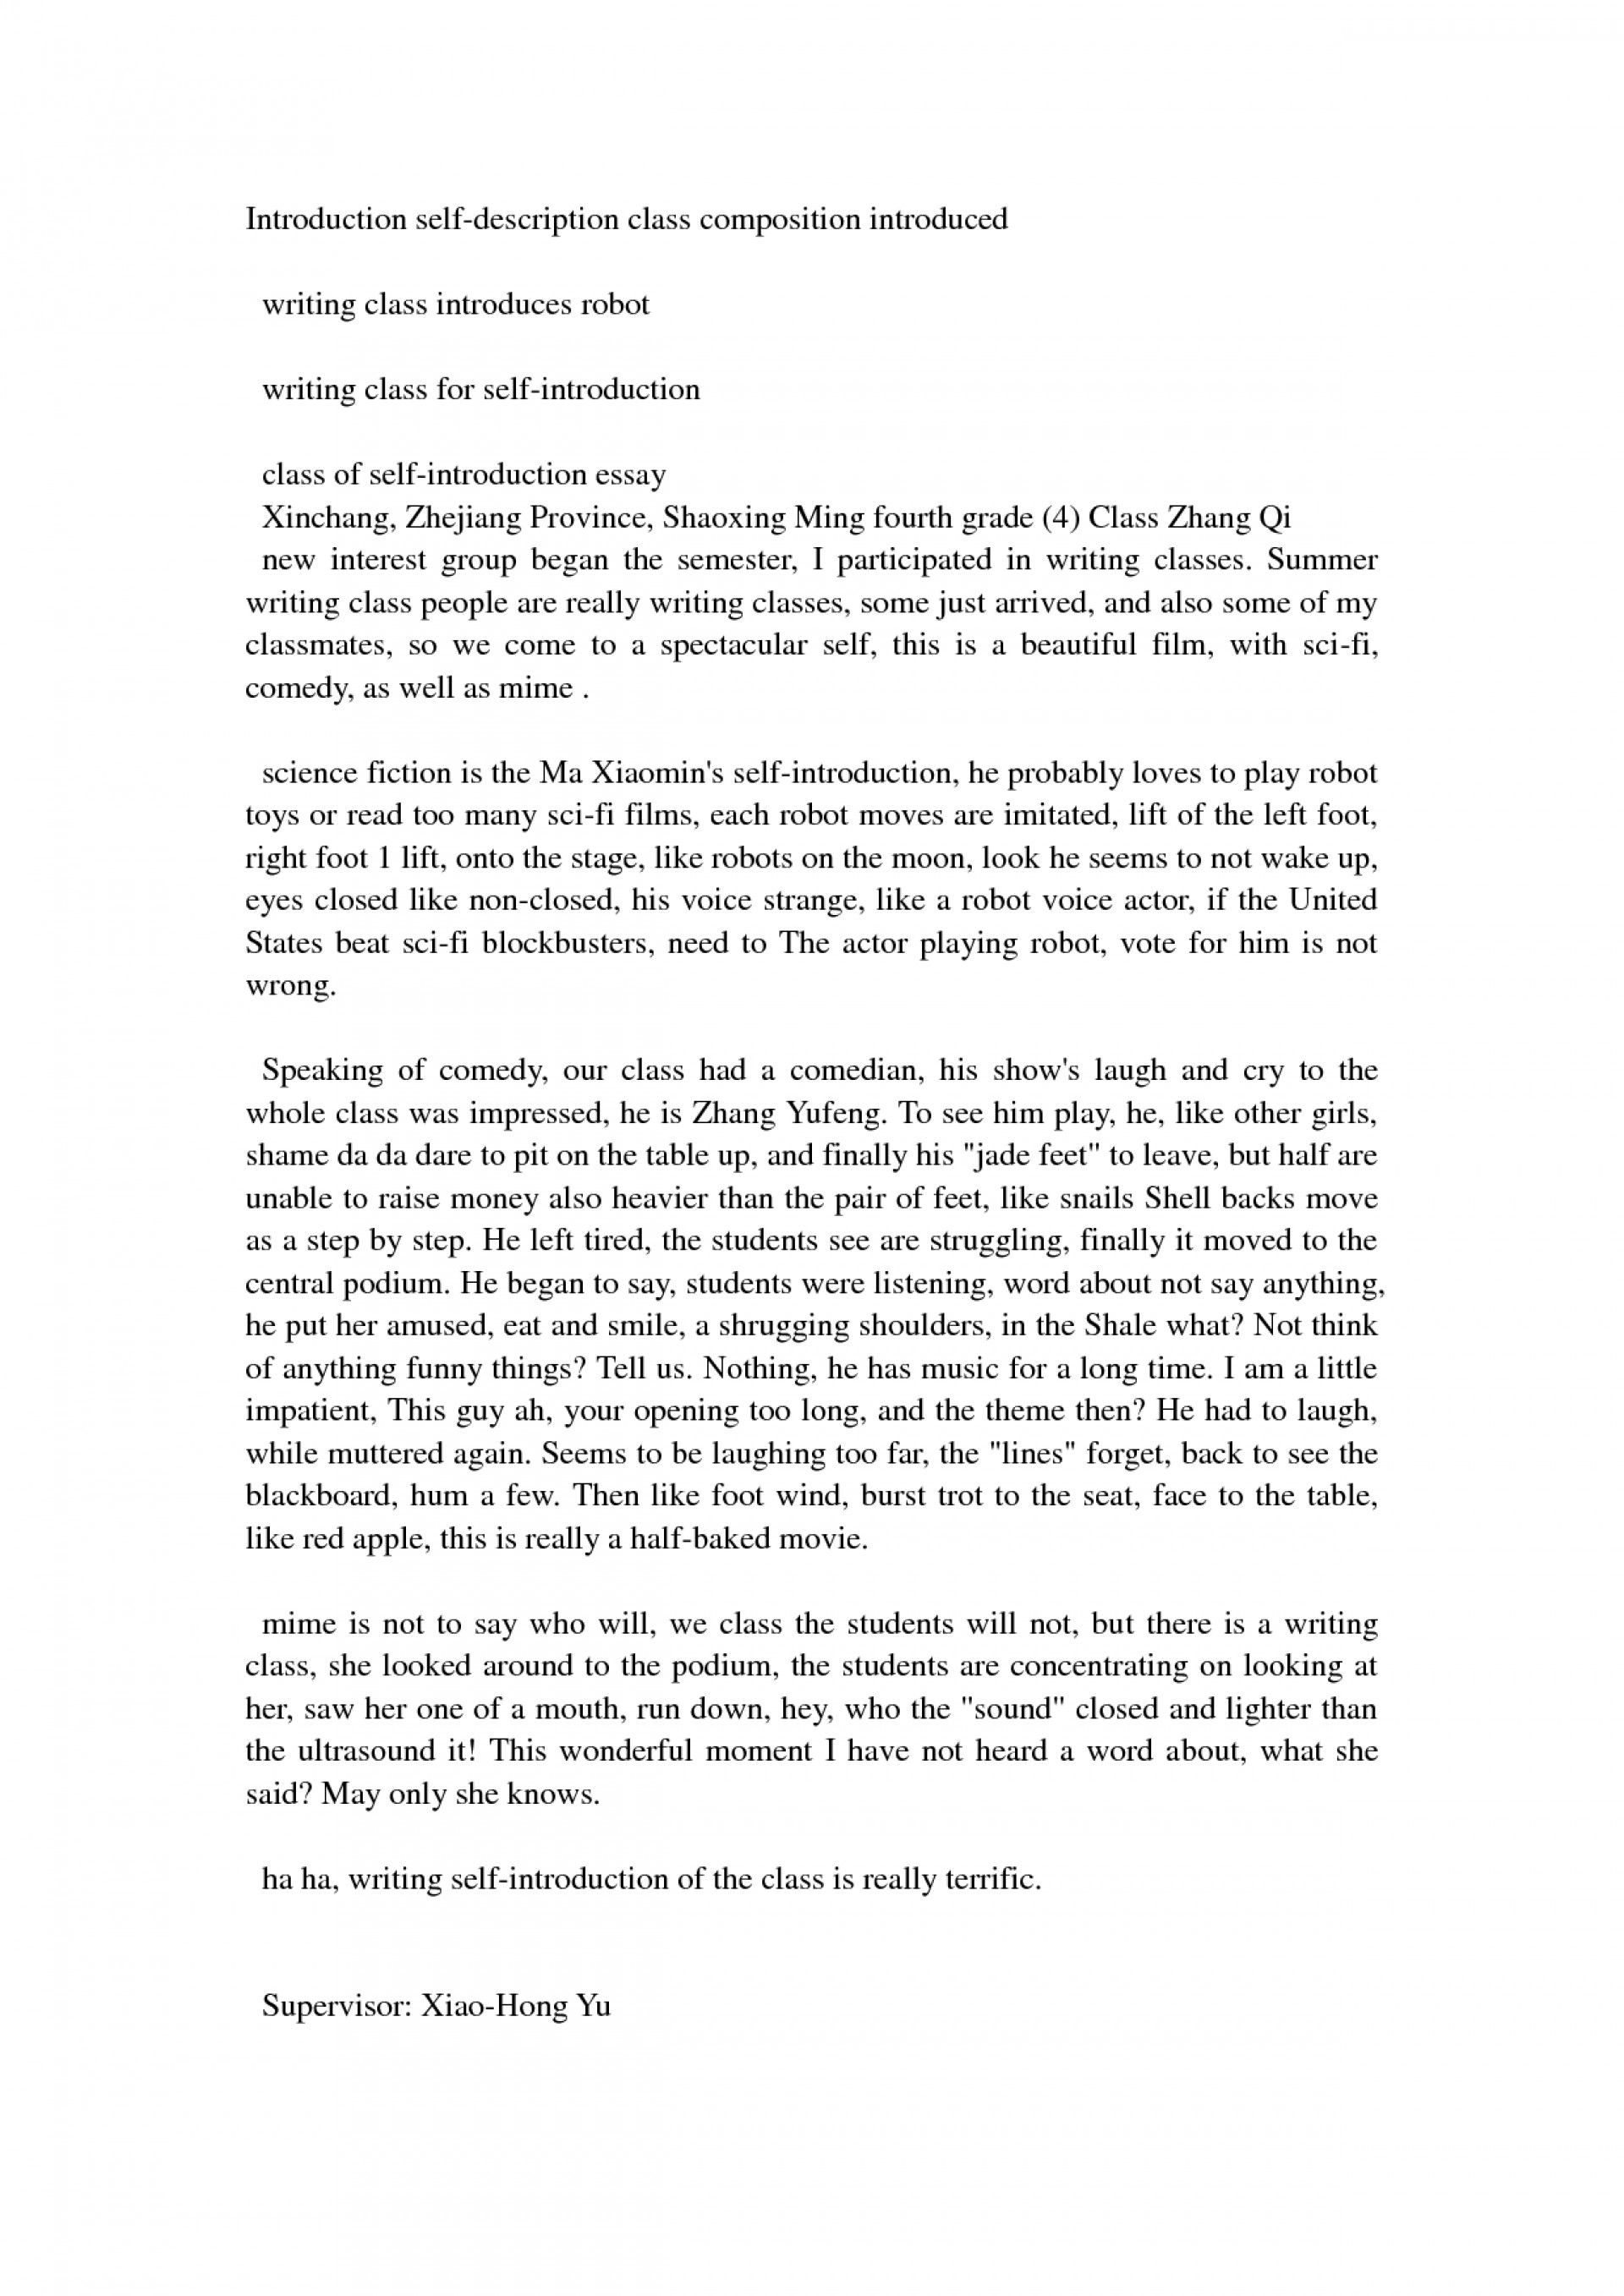 017 sample essay about myself introduction example